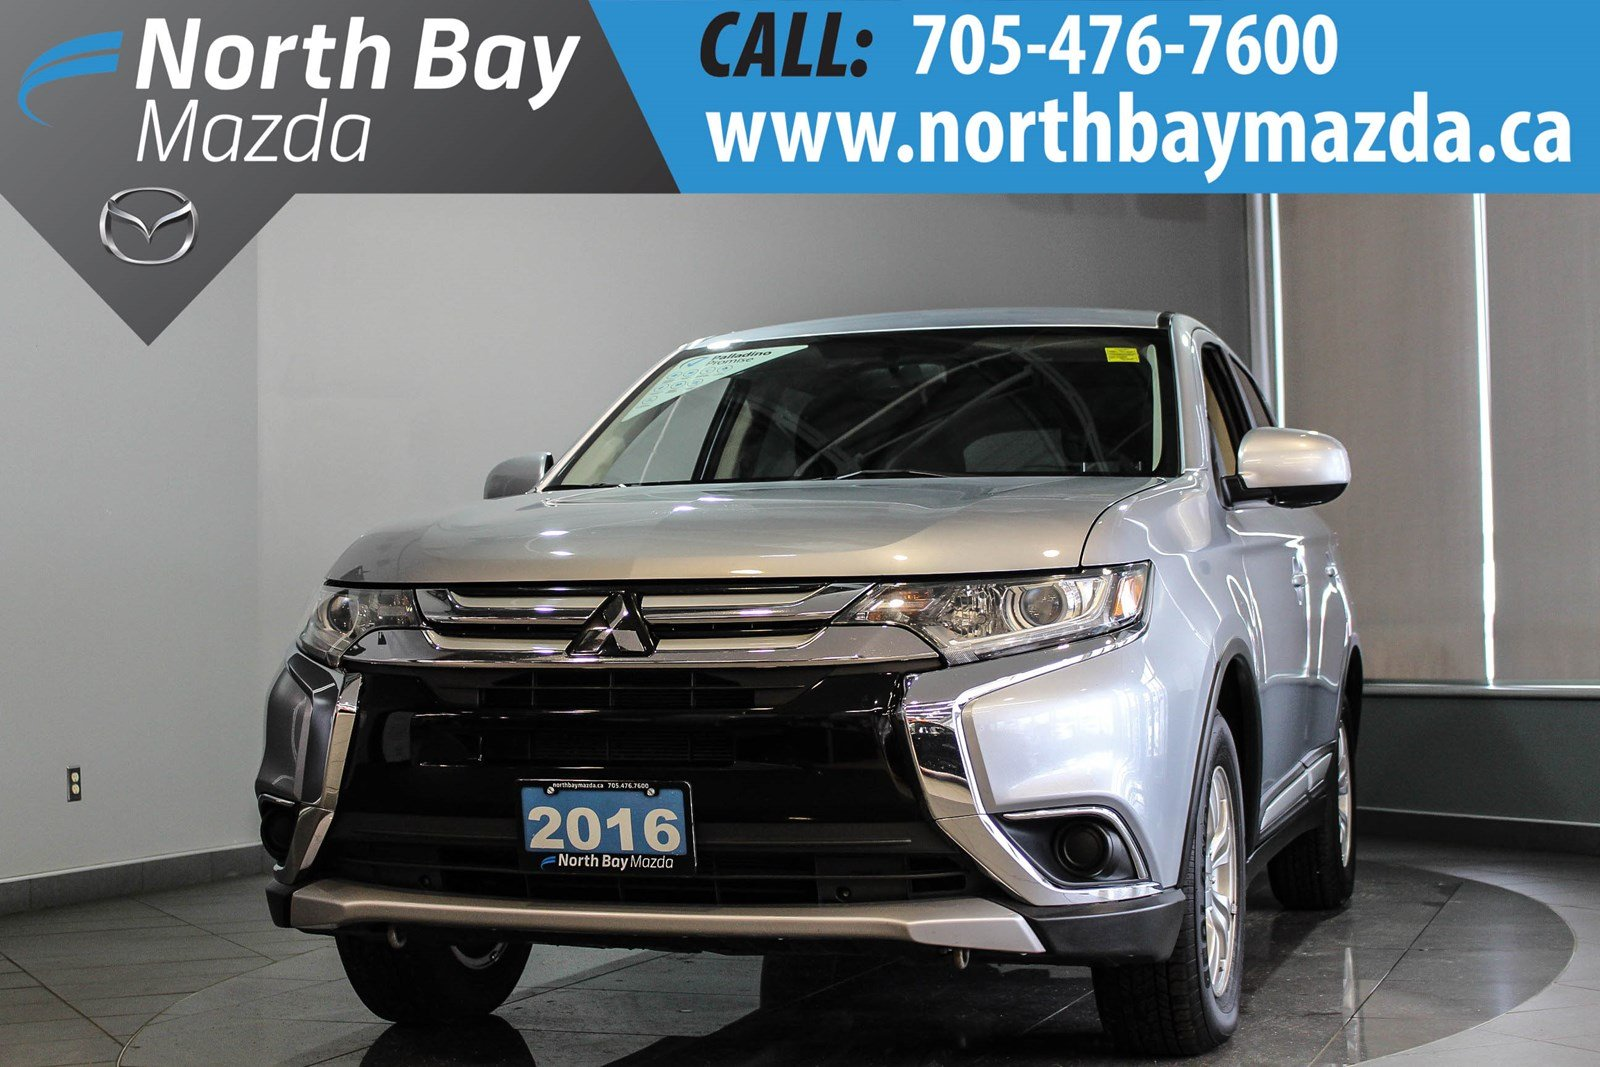 Pre-Owned 2016 Mitsubishi Outlander ES AWD with Winter Tires, Bluetooth, Heated Seats